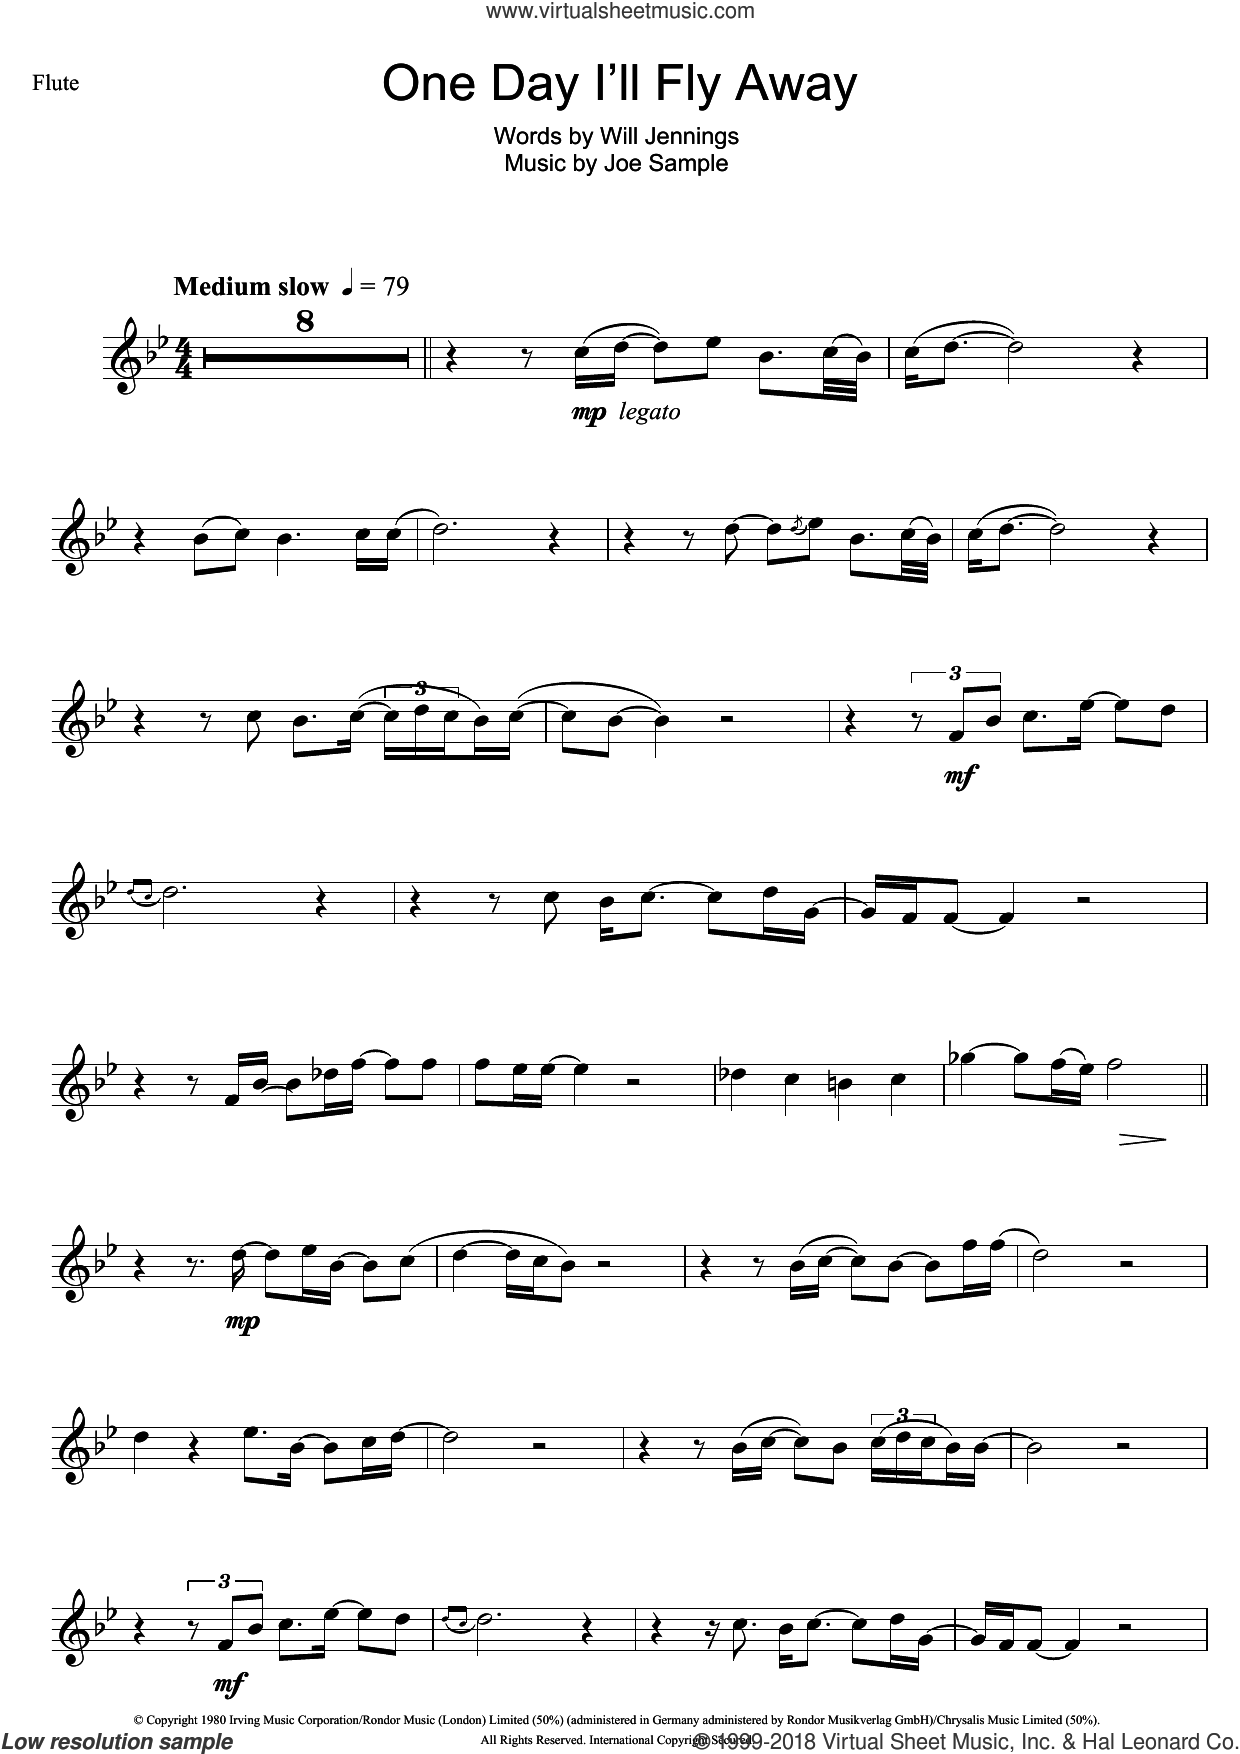 One Day I'll Fly Away sheet music for flute solo by Randy Crawford, Nicole Kidman, Joe Sample and Will Jennings, intermediate skill level